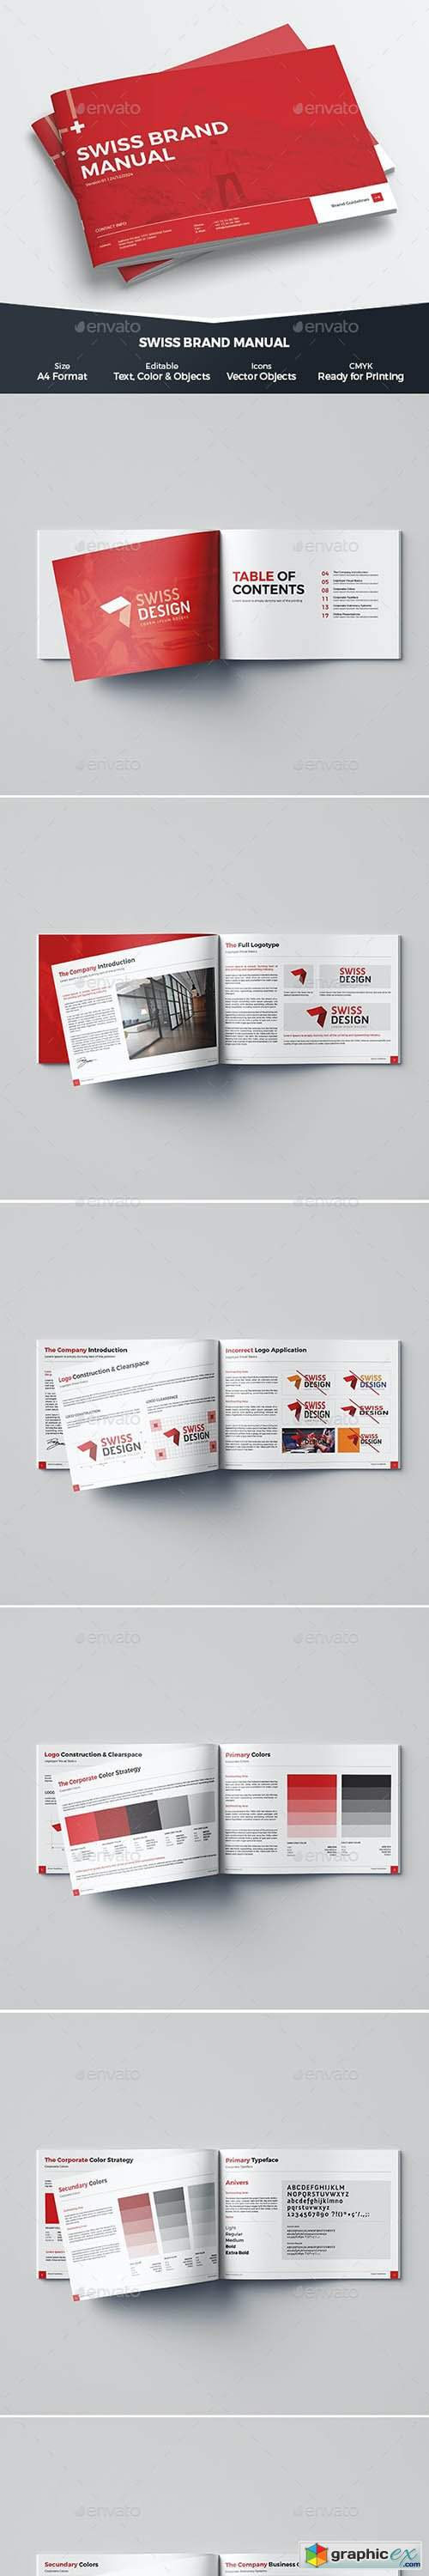 Brand Manual - Brand Guidelines